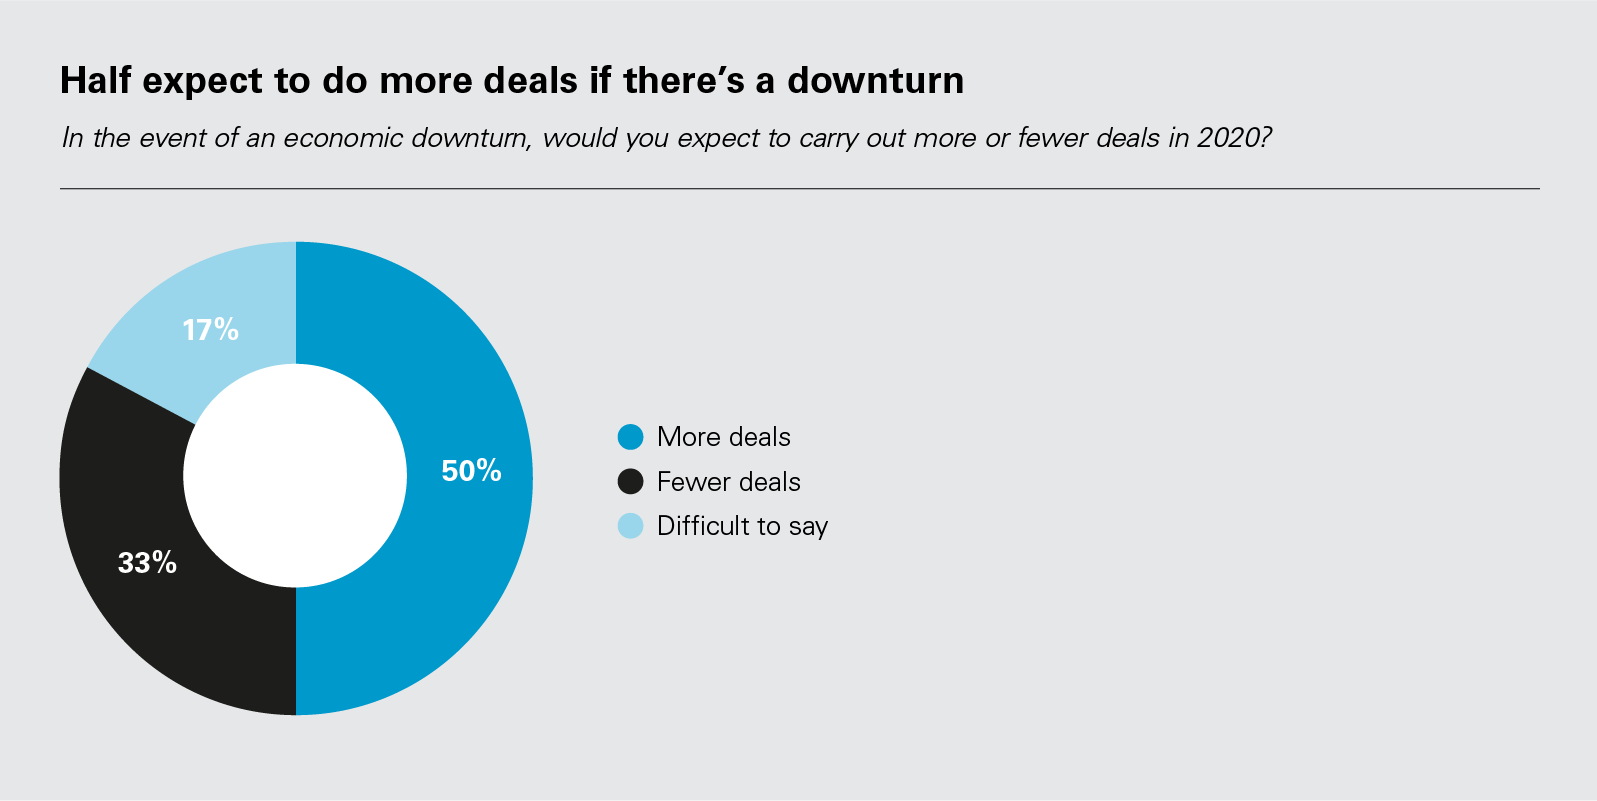 Half expect to do more deals if there's a downturn